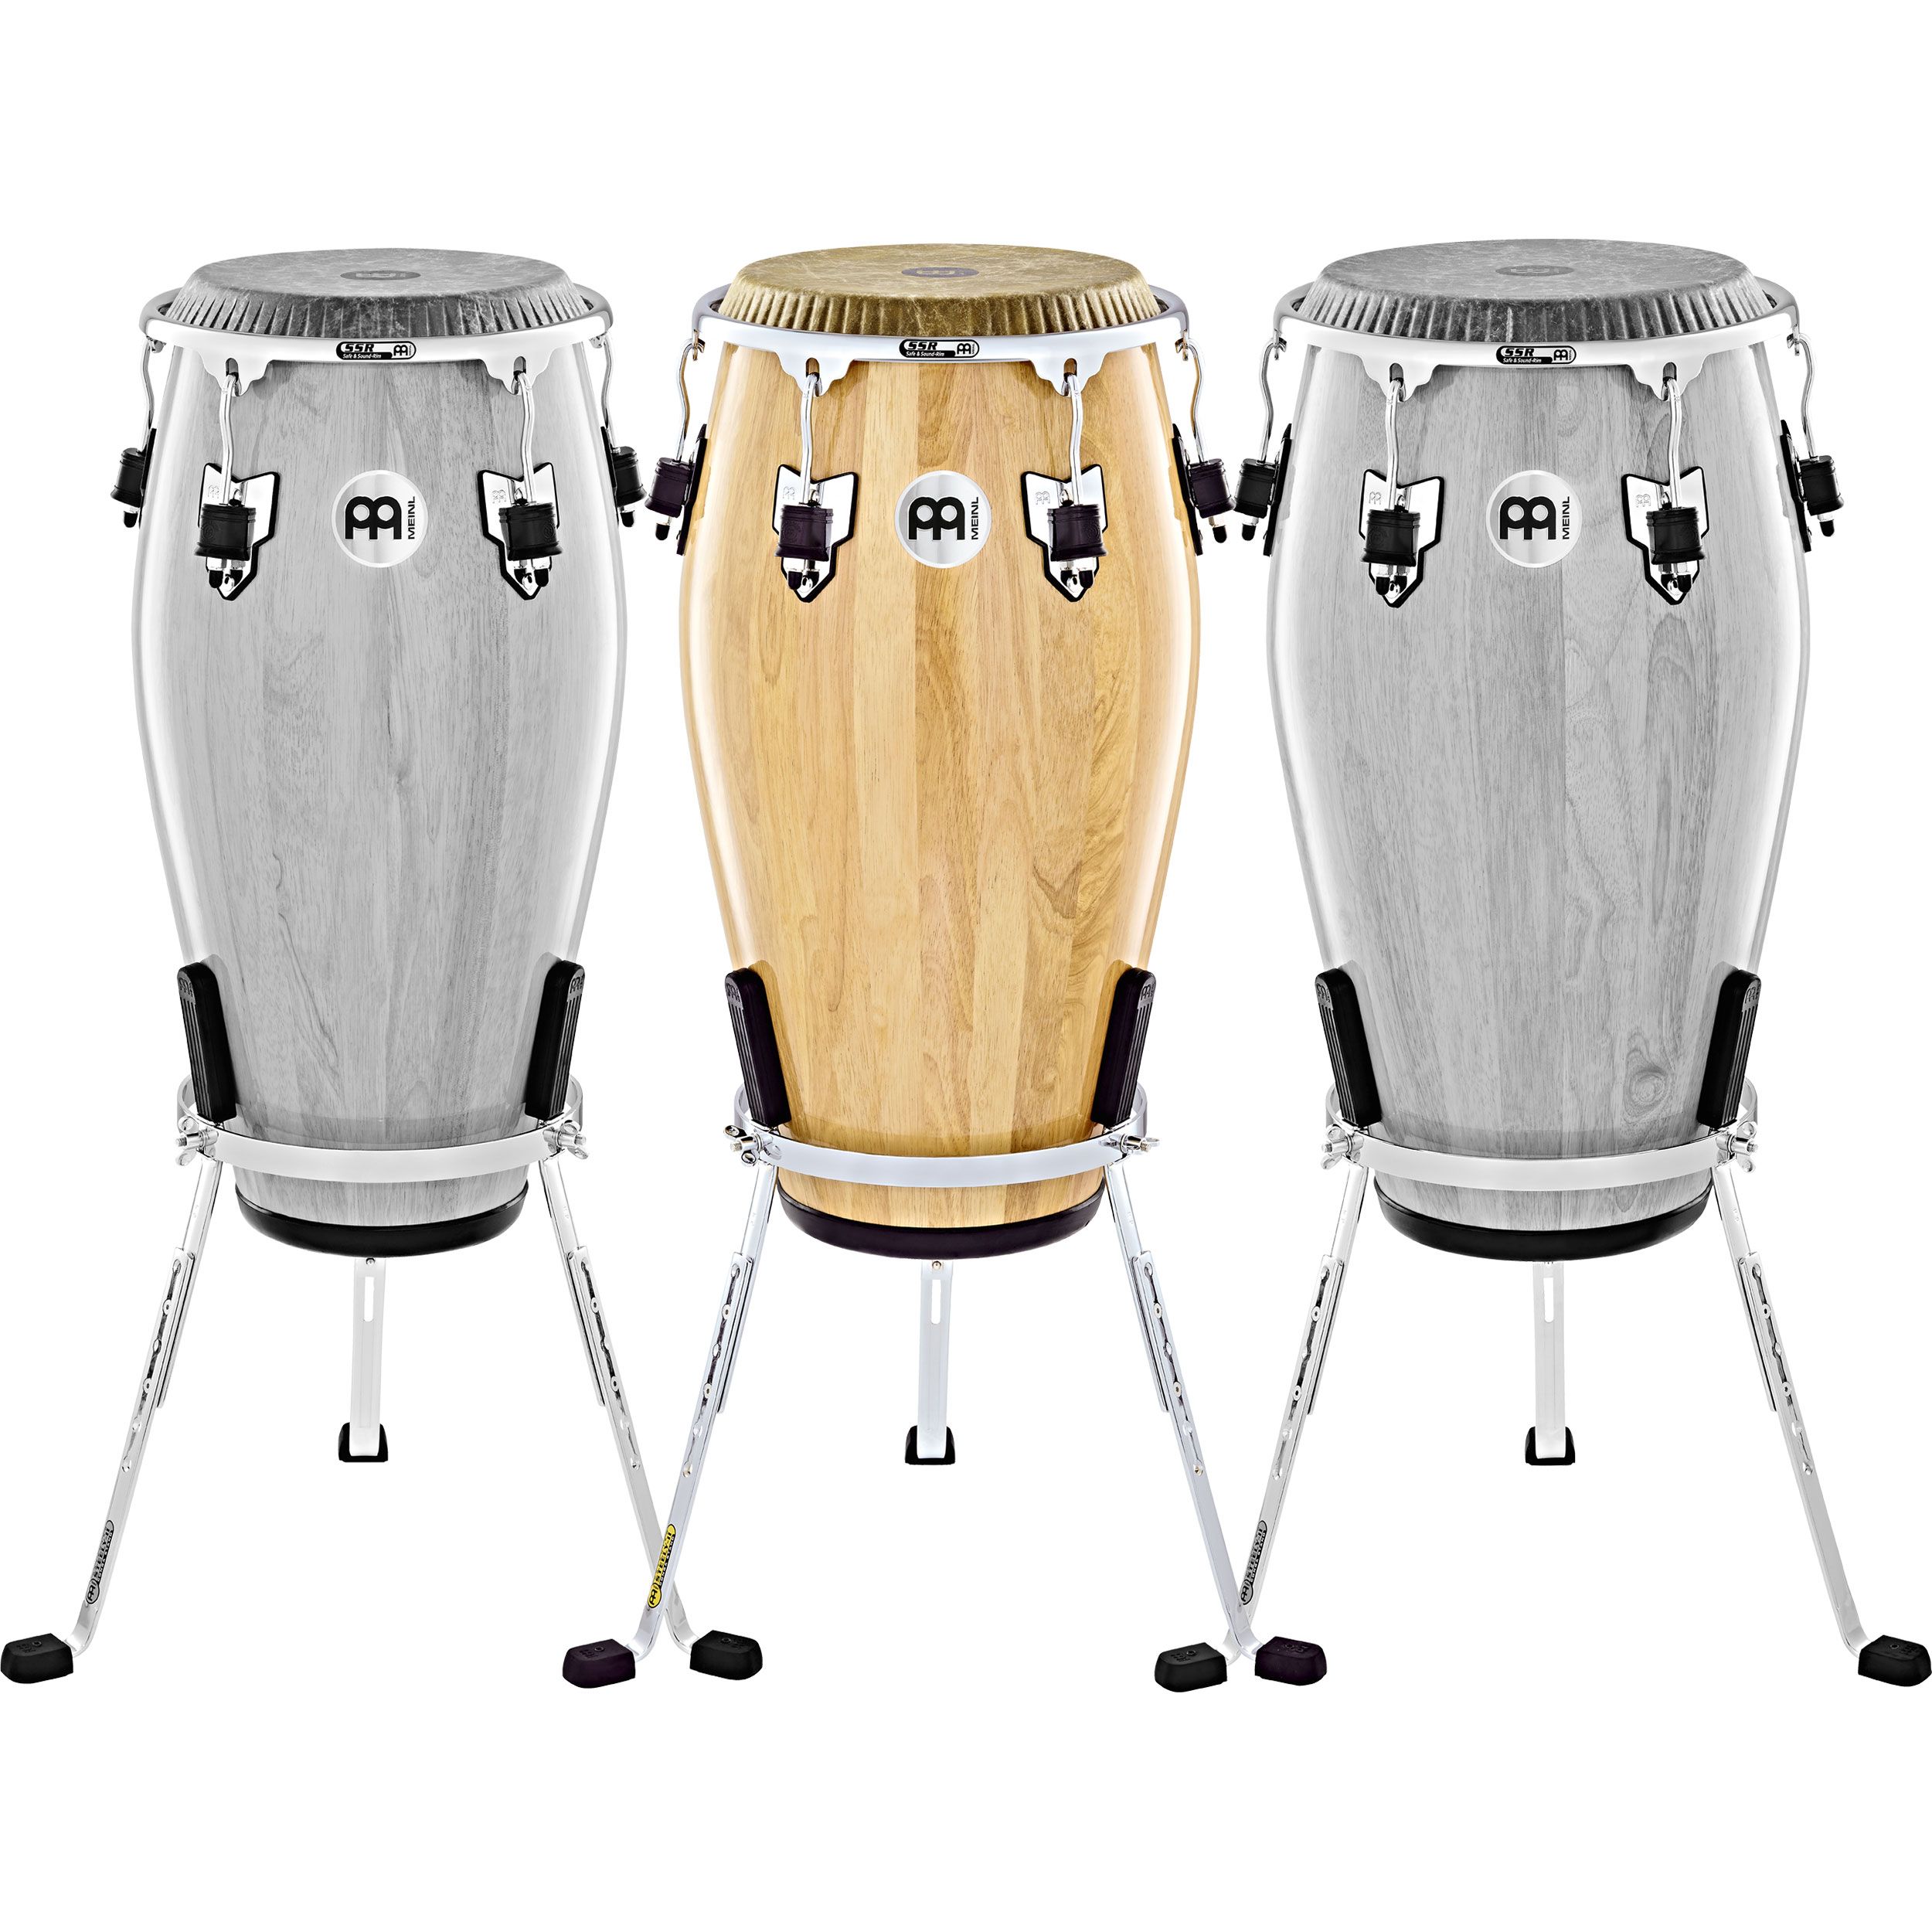 """Meinl 11.75"""" Marathon Exclusive Conga in Natural with Fiberskyn Head and Chrome Hardware"""